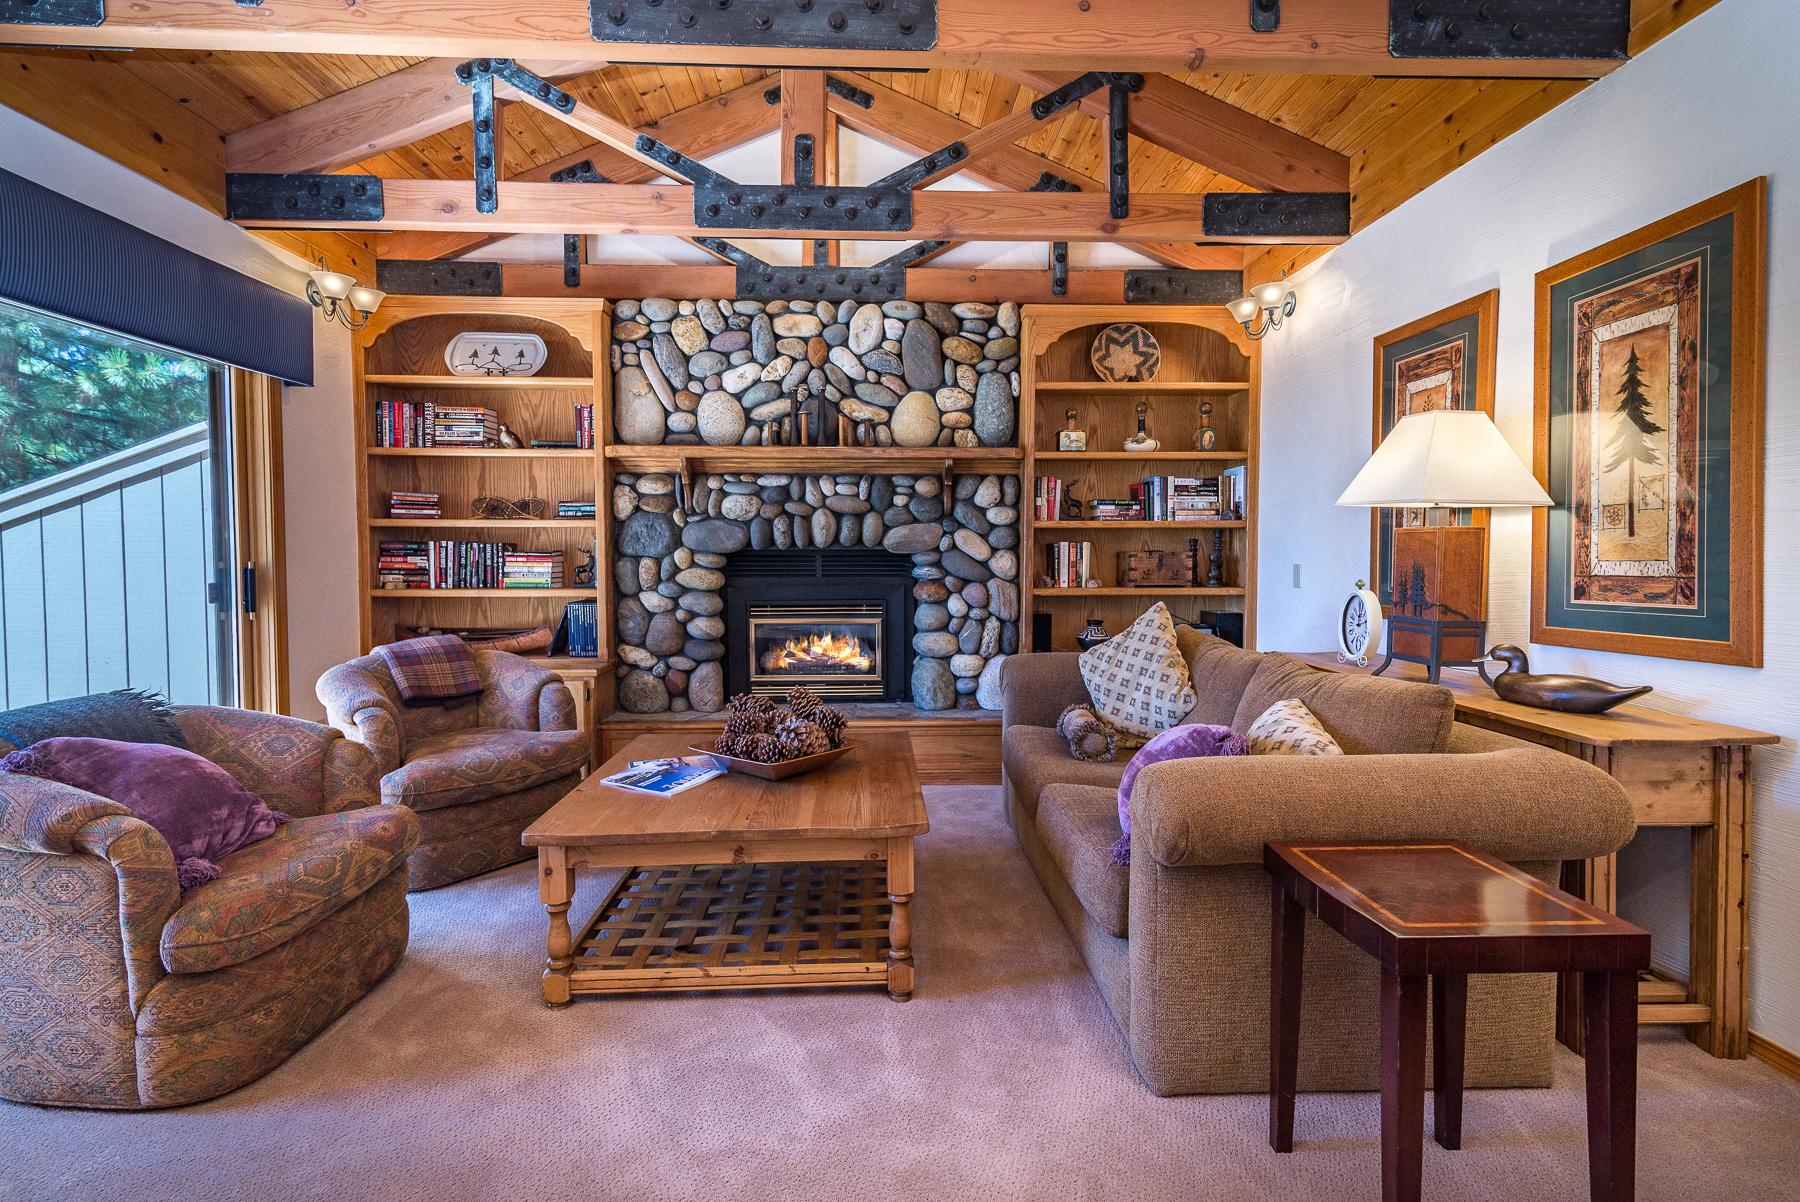 The cozy cabin-style living room invites you to snuggle up with a book.